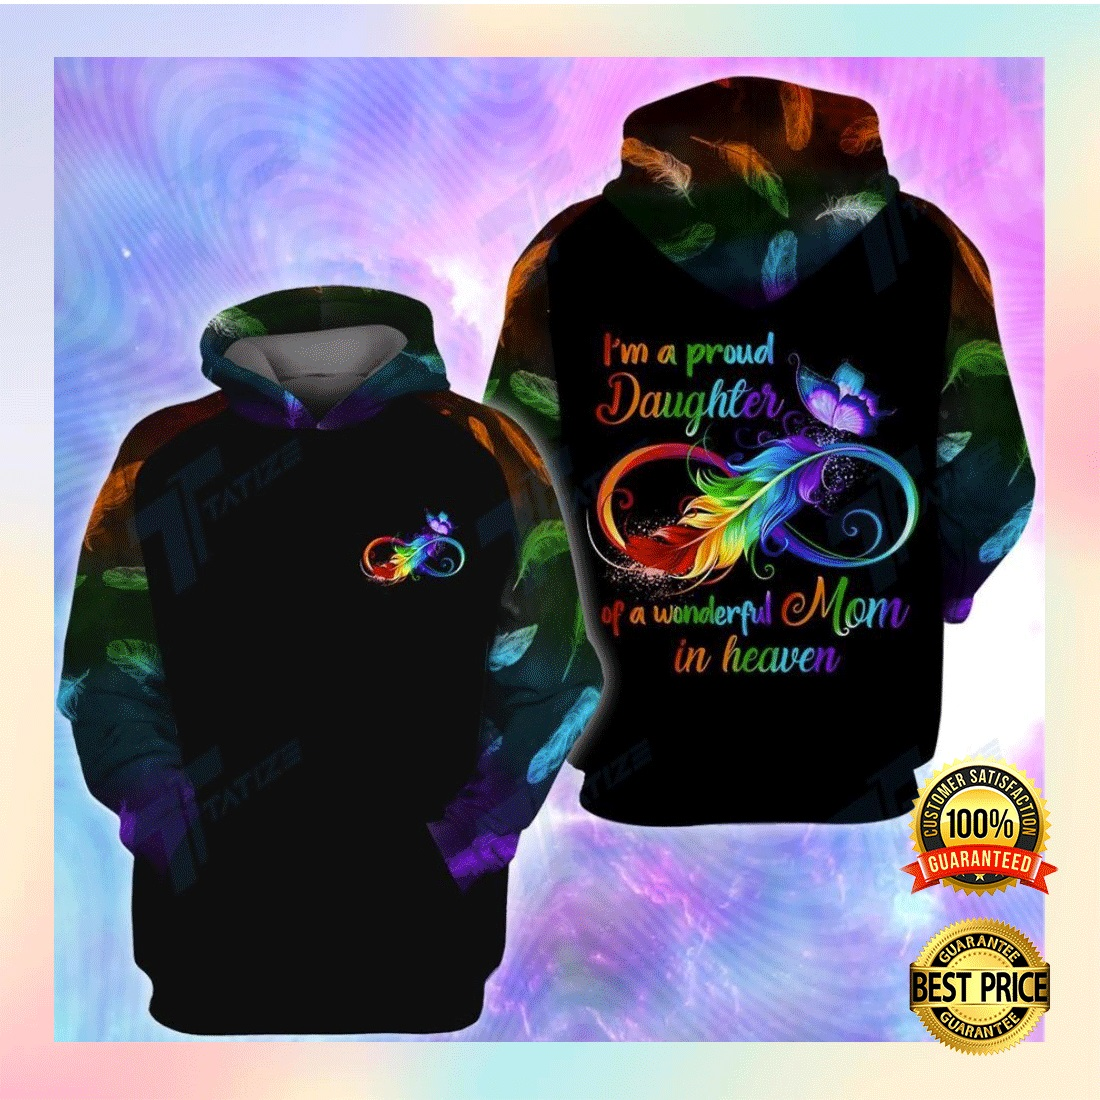 I'M A PROUD DAUGHTER OF A WONDERFUL MOM IN HEAVEN ALL OVER PRINTED 3D HOODIE 6